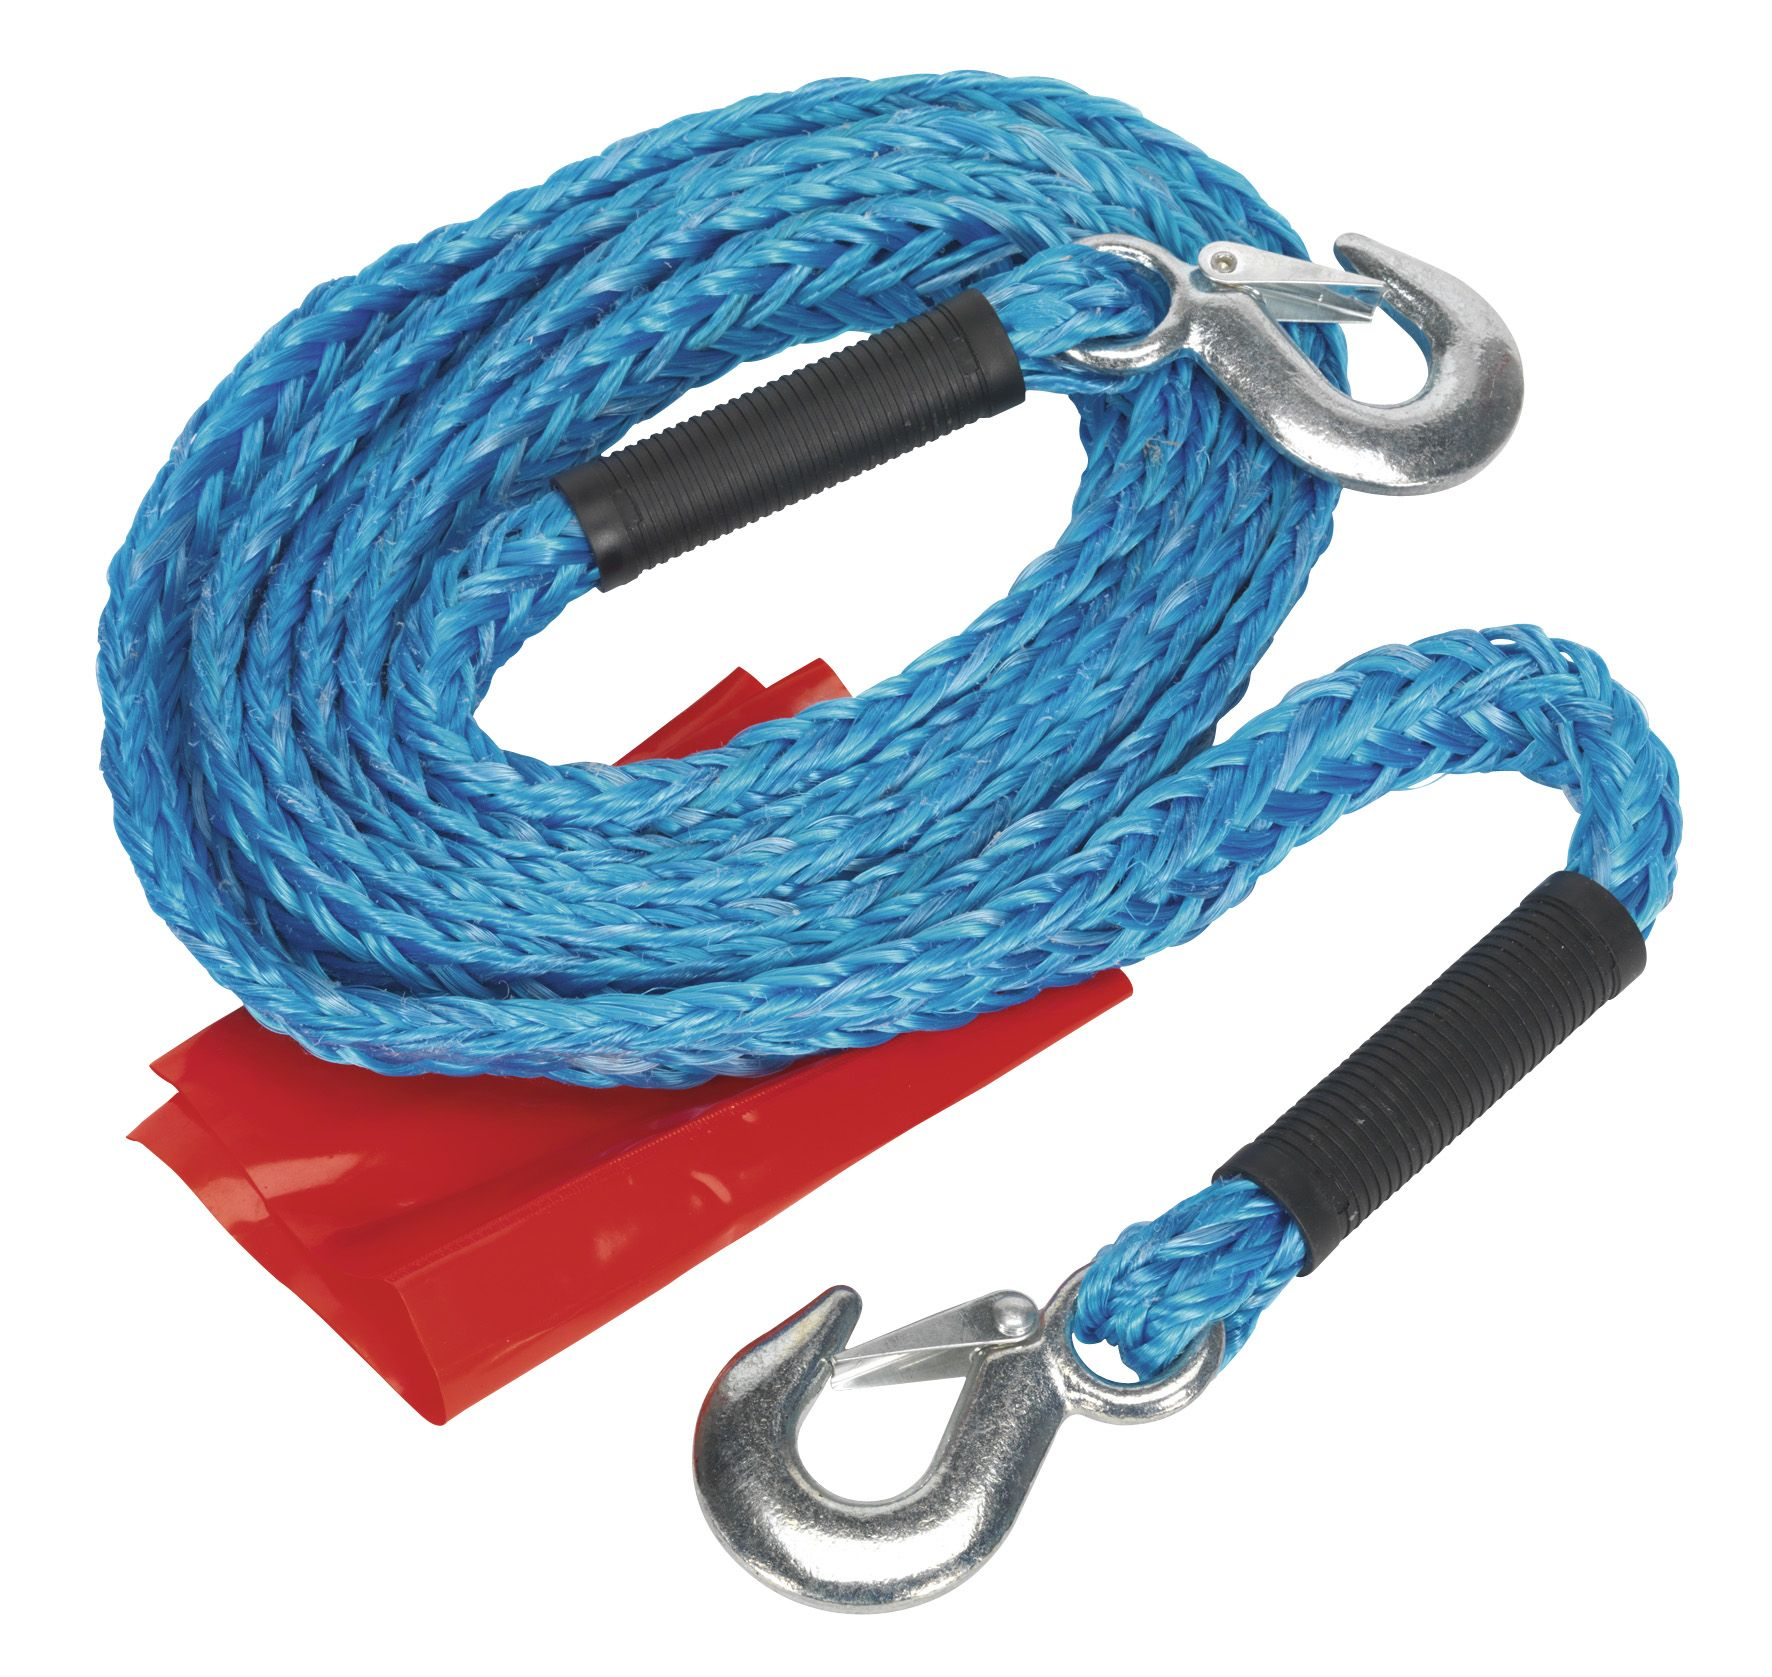 Sealey Tow Rope 2000kg Rolling Load Capacity